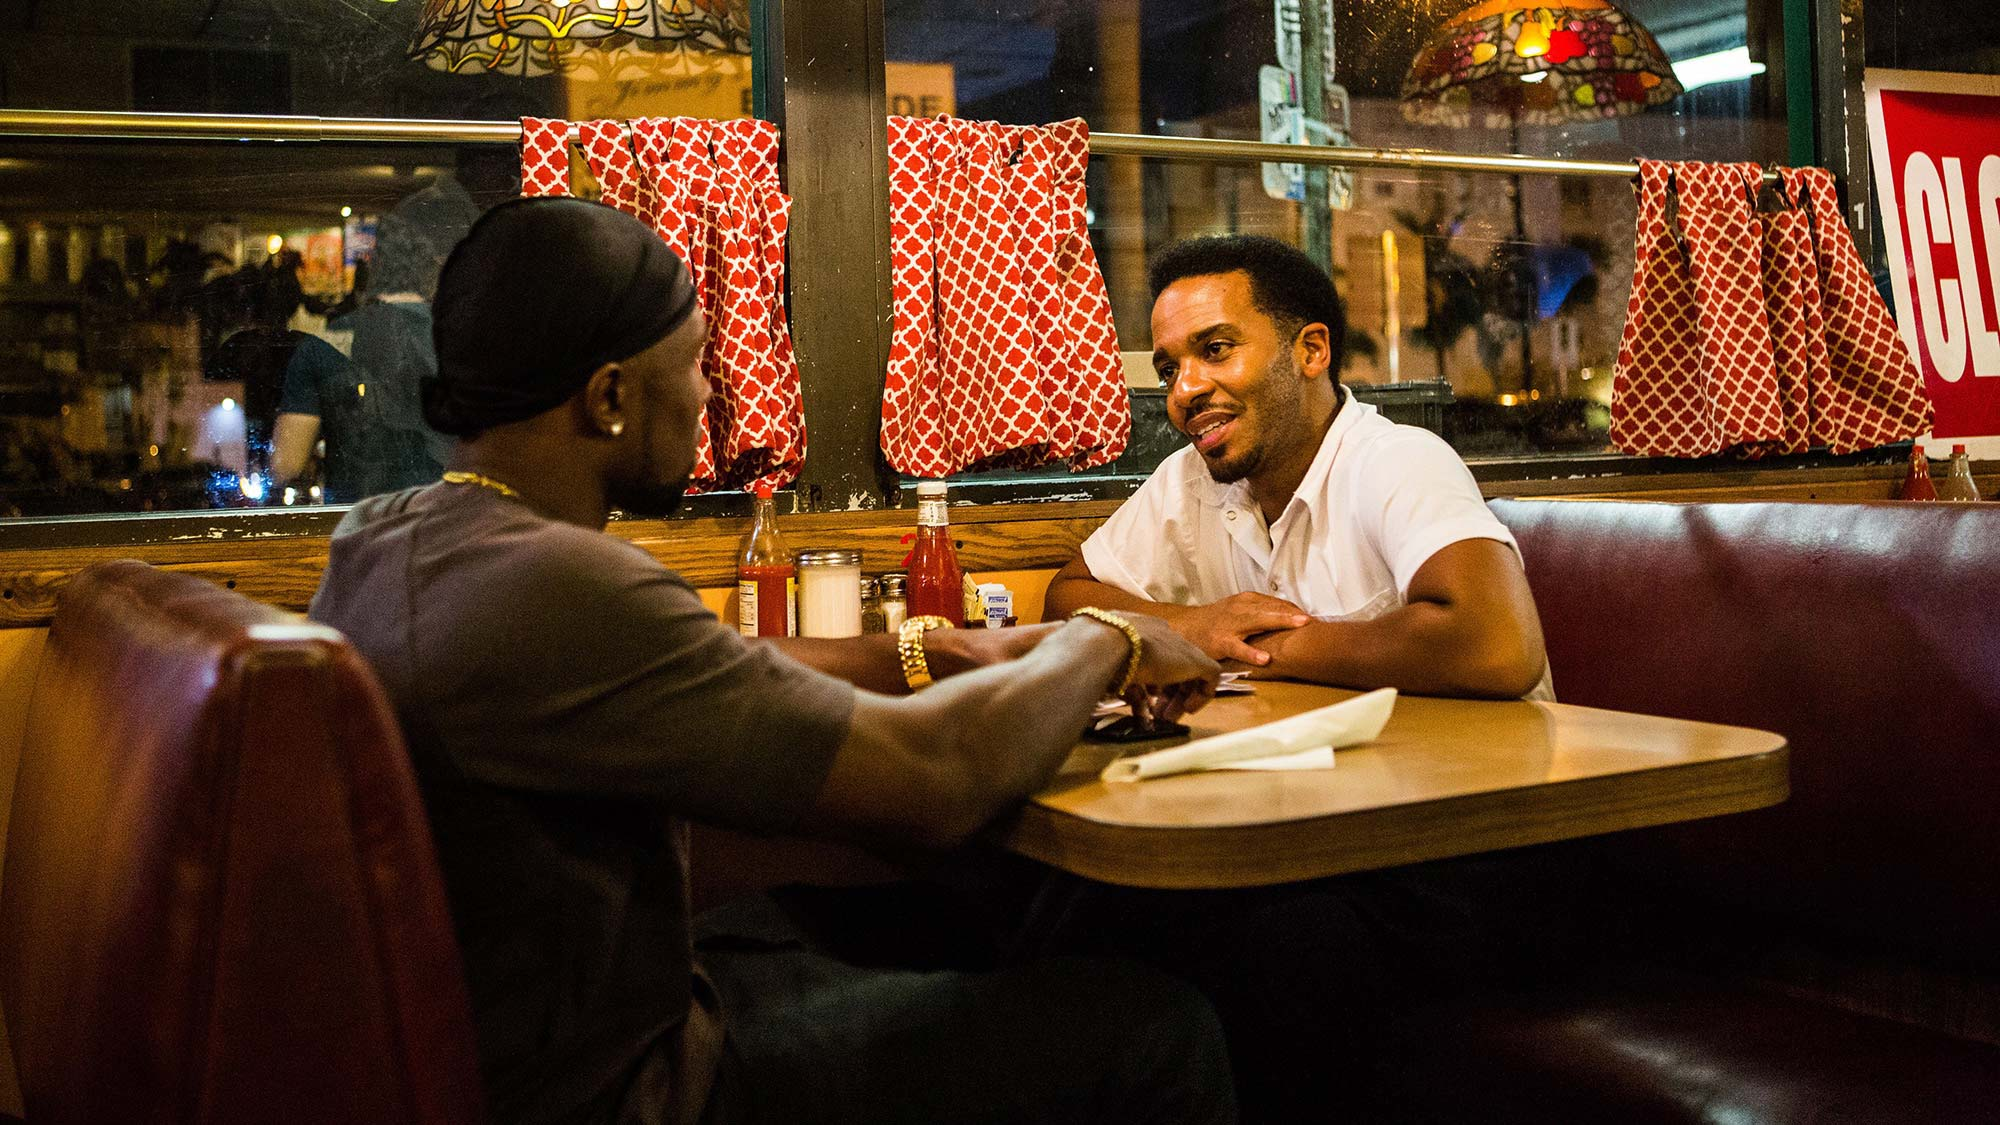 Movies to watch during Pride: Moonlight